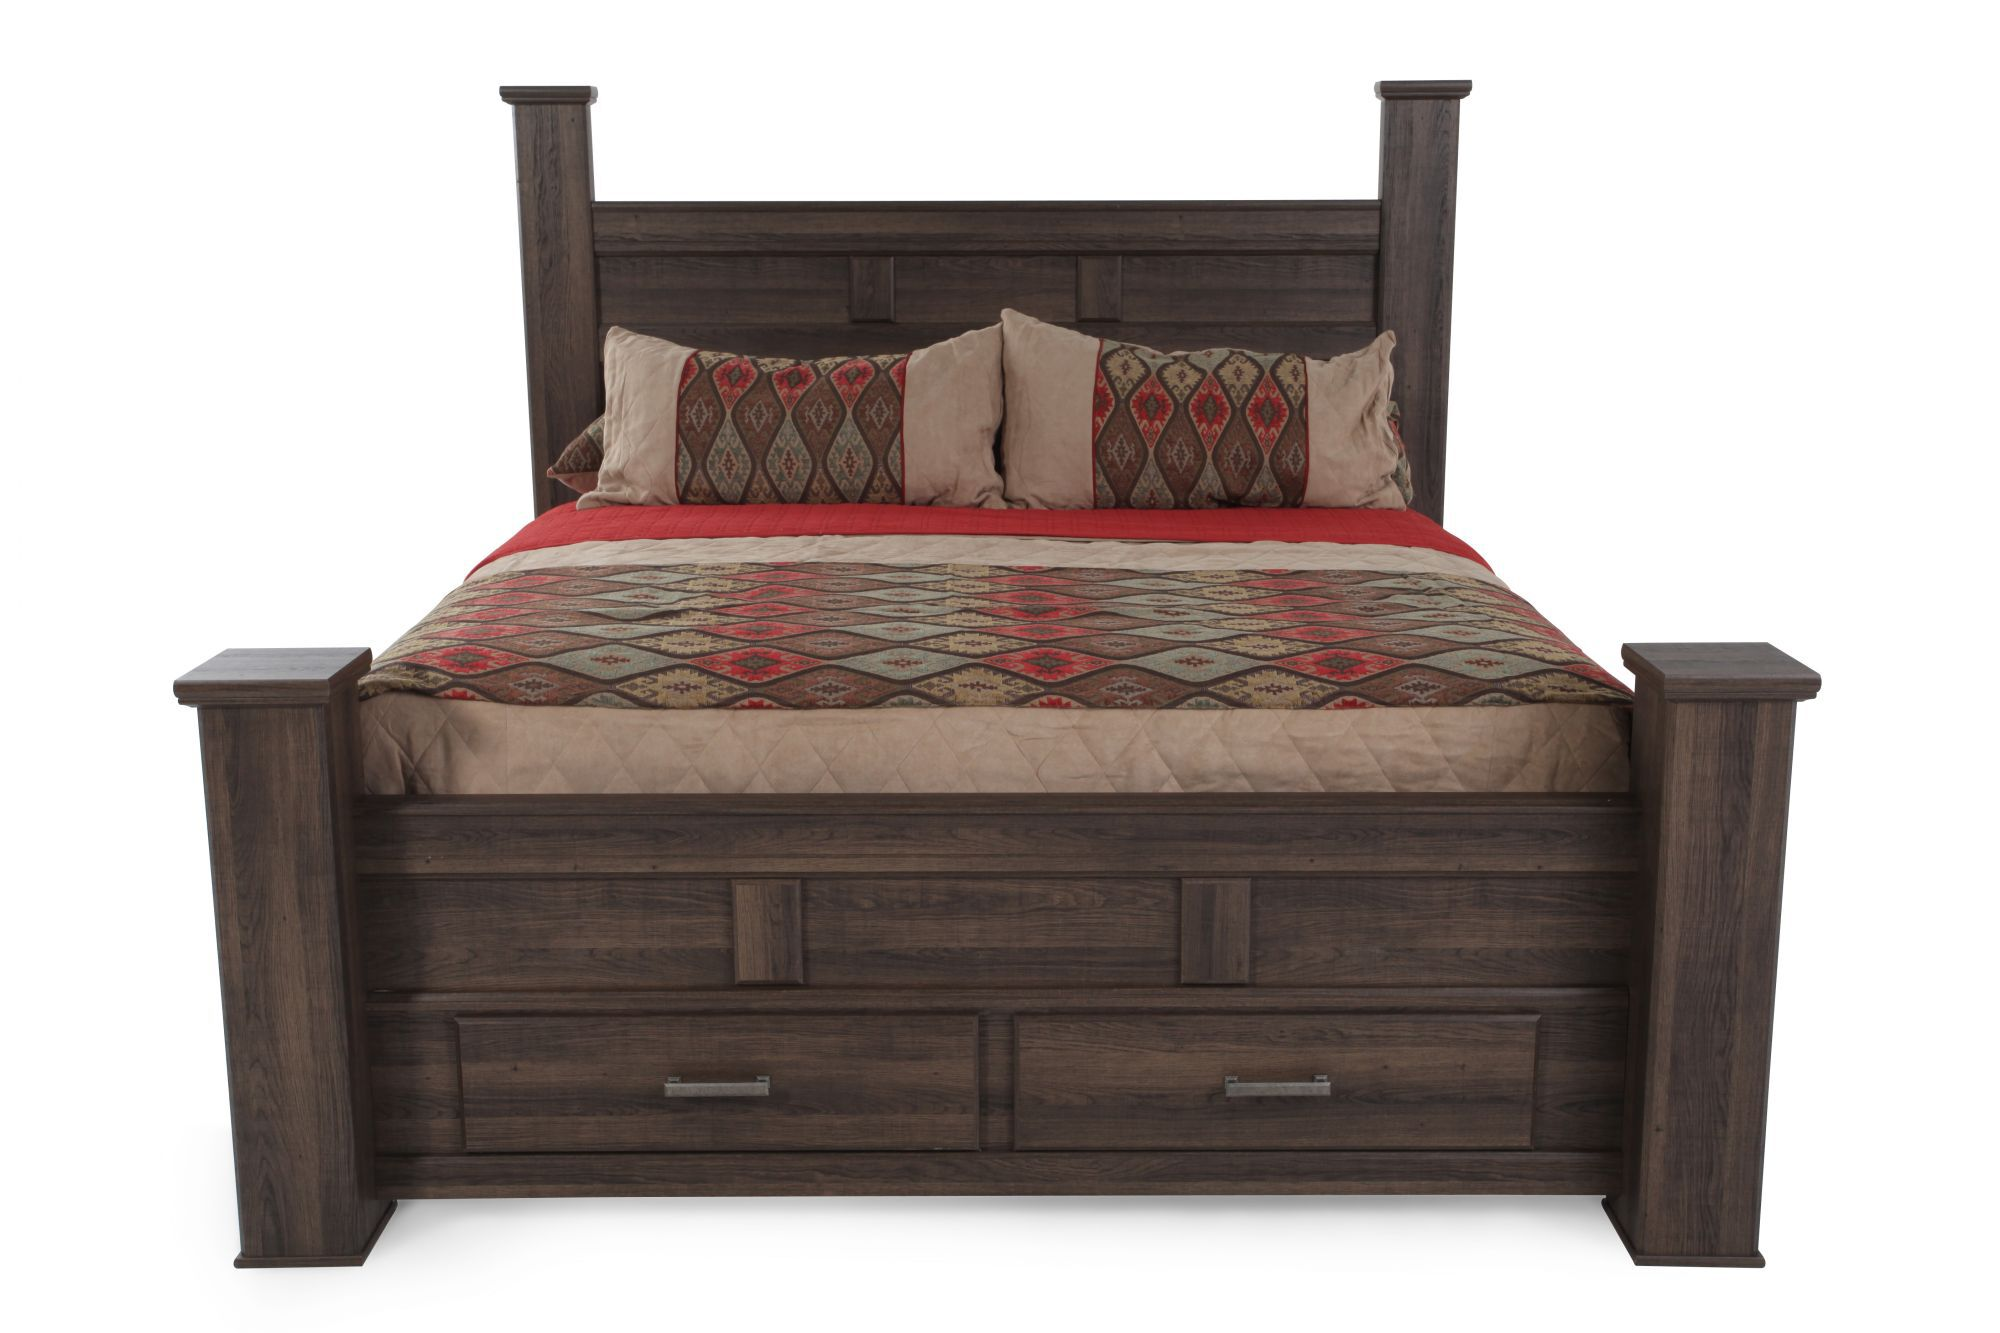 68u0026quot; Planked Two Drawer Storage Bed In Aged Brown